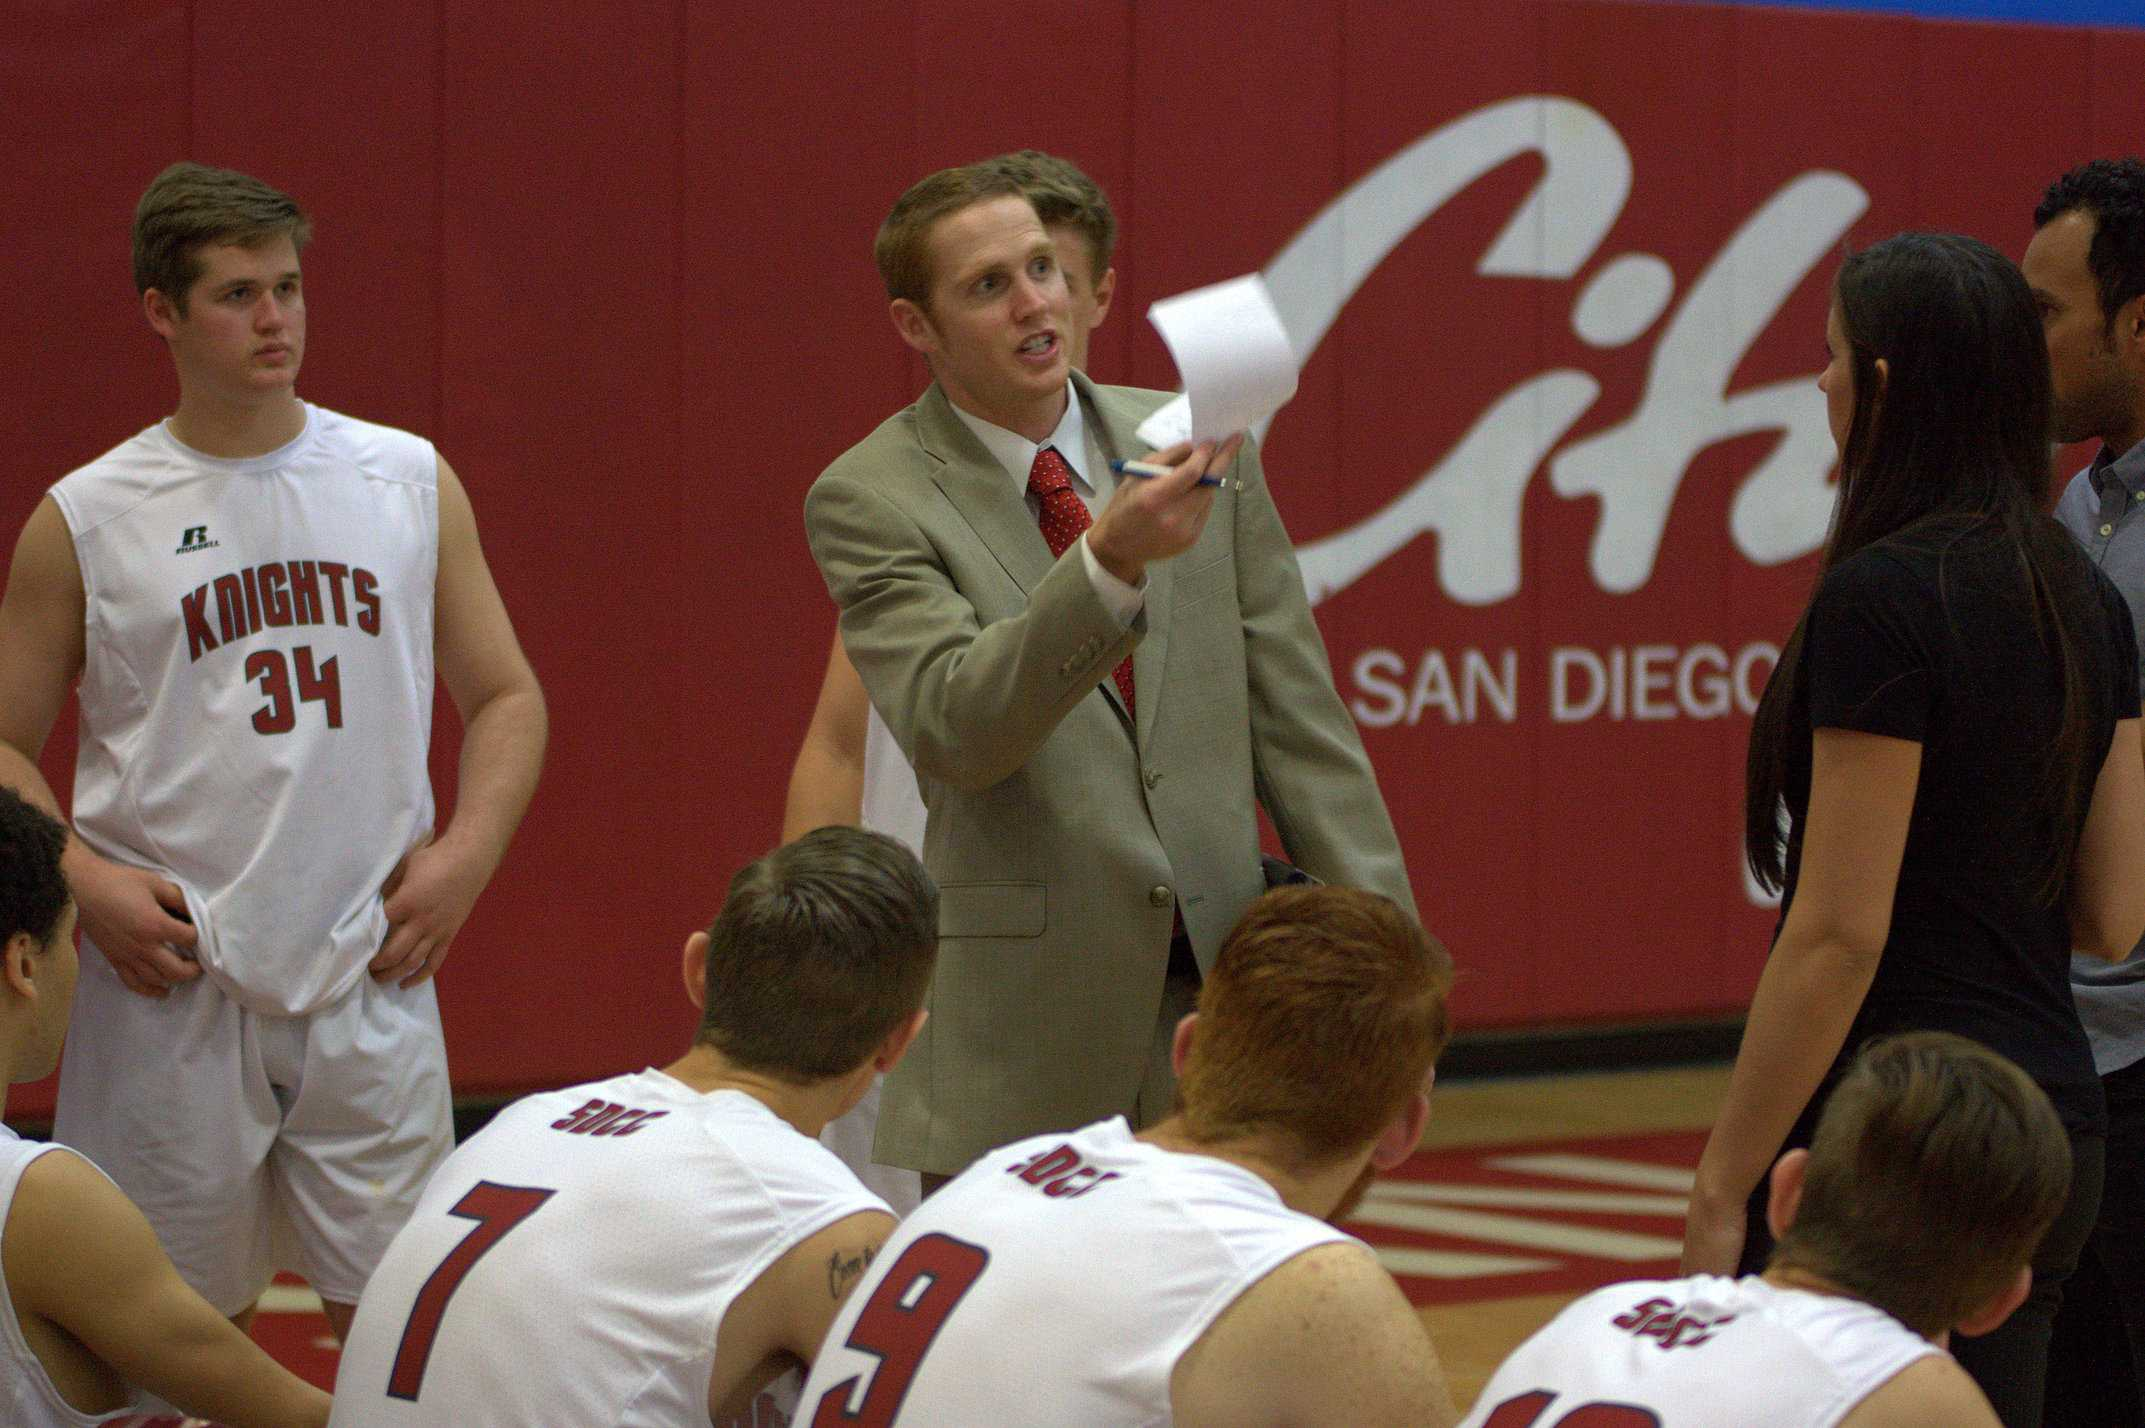 After losing their first set against El Camino College in the home opener on Feb. 13, Head Coach Kevin Pratte talks to the men's volleyball team about finding a way to stay in the match. Photo credit: David Pradel